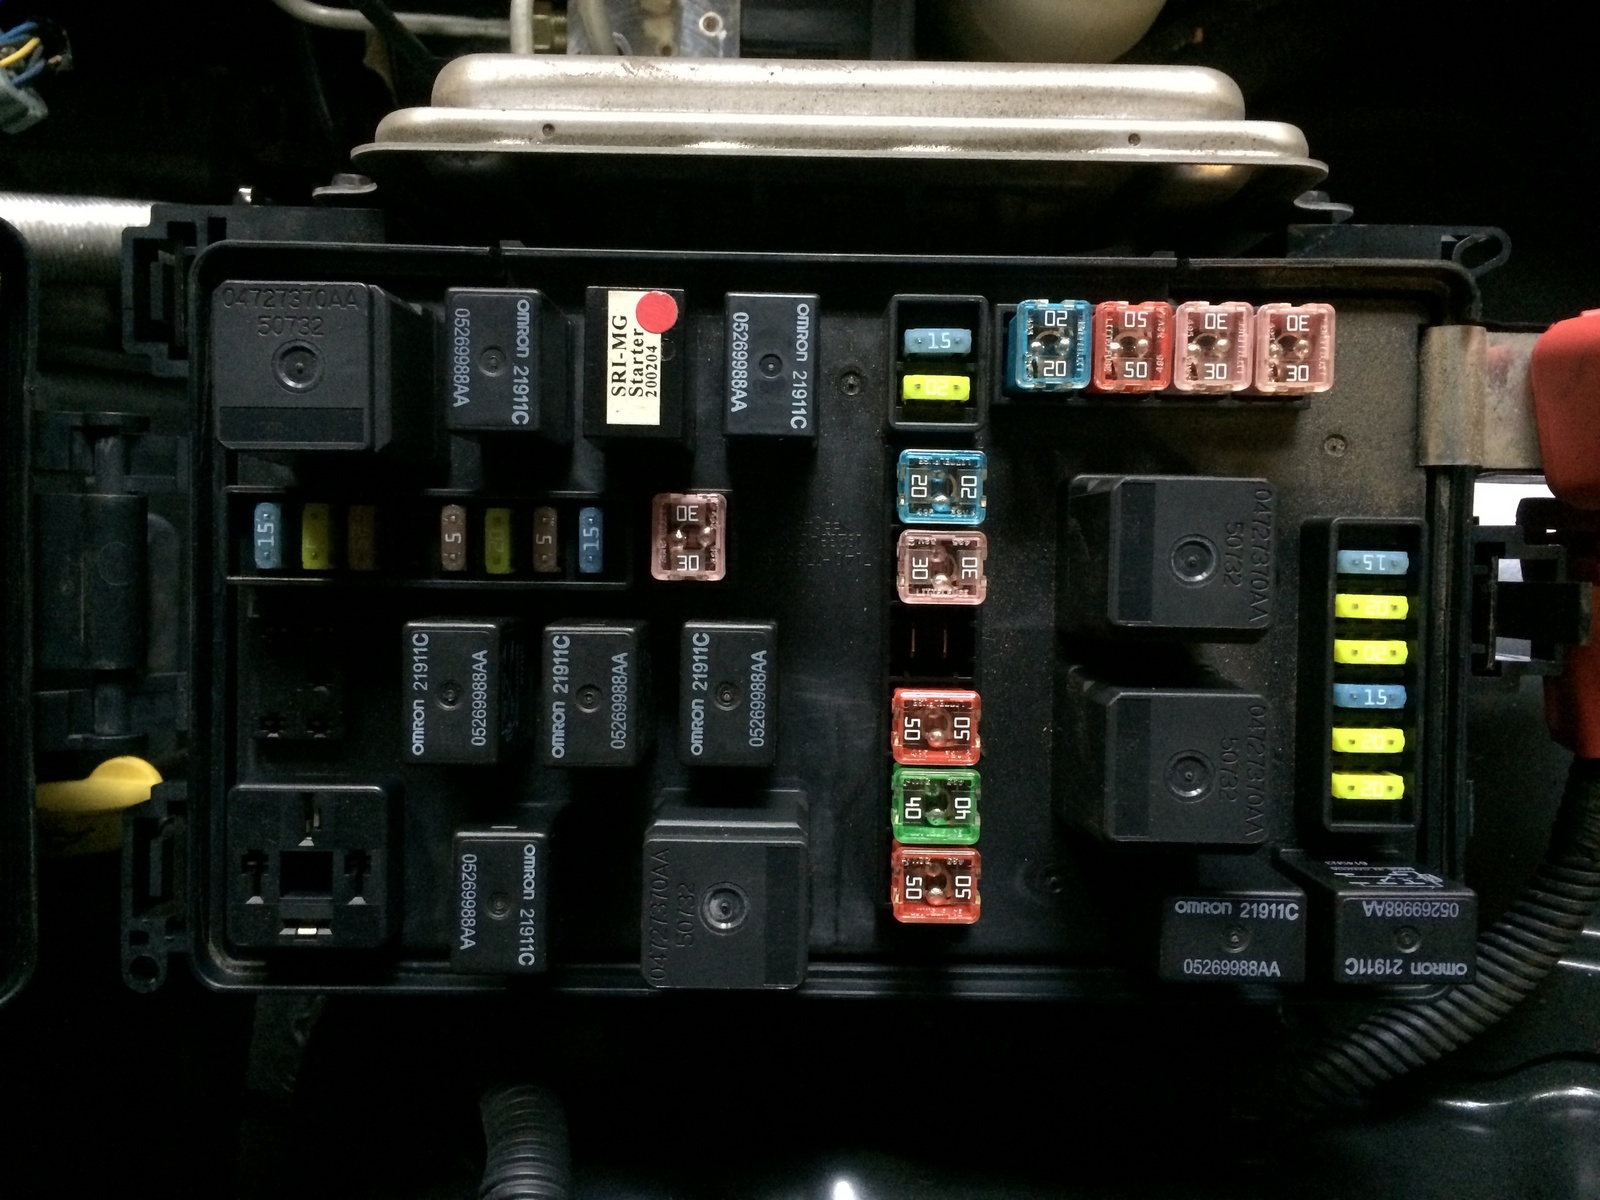 Fuse Box On 2013 Dodge Charger : Dodge charger fuse box diagram nice place to get